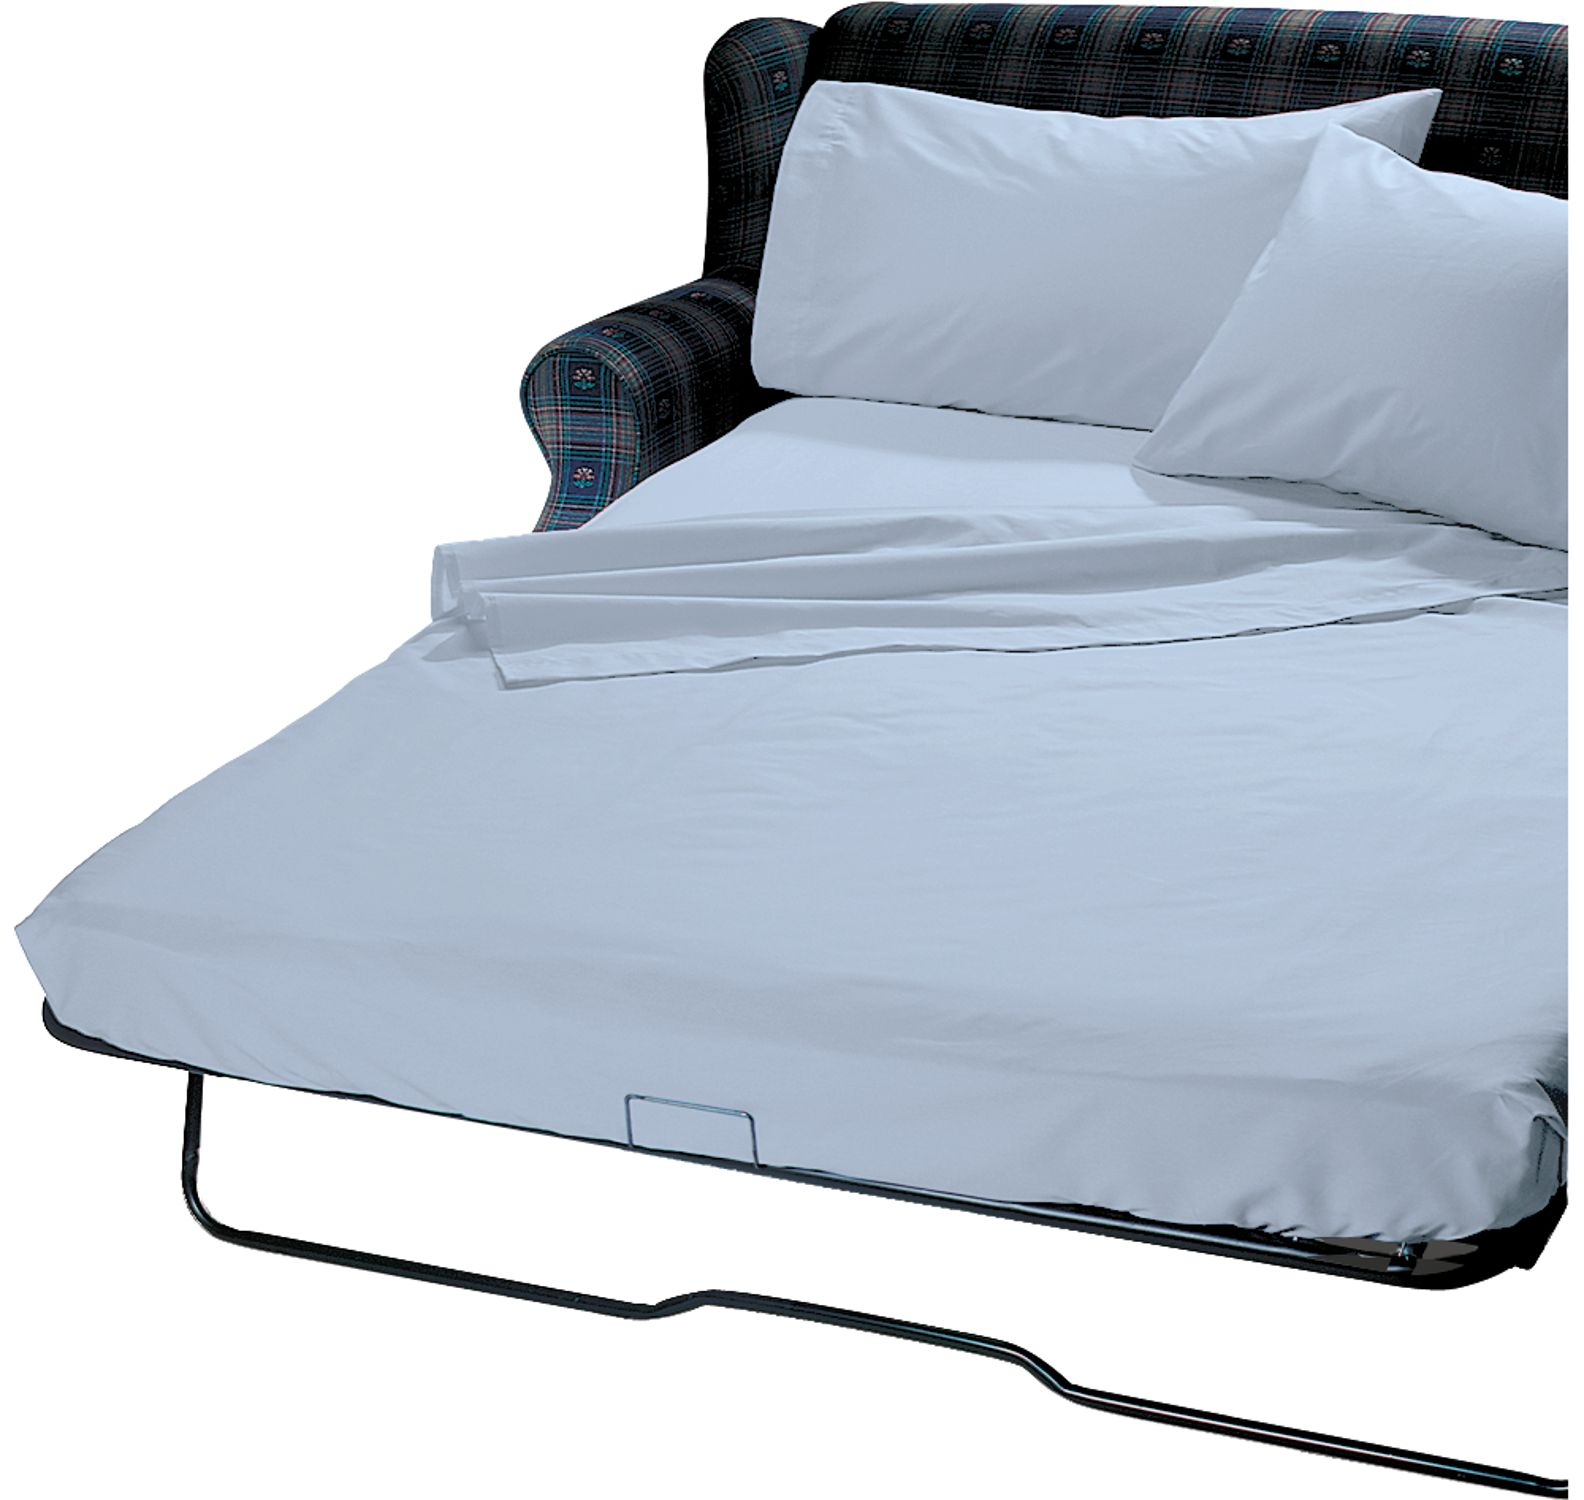 Sofa Bed Sheets Full And Queen Size